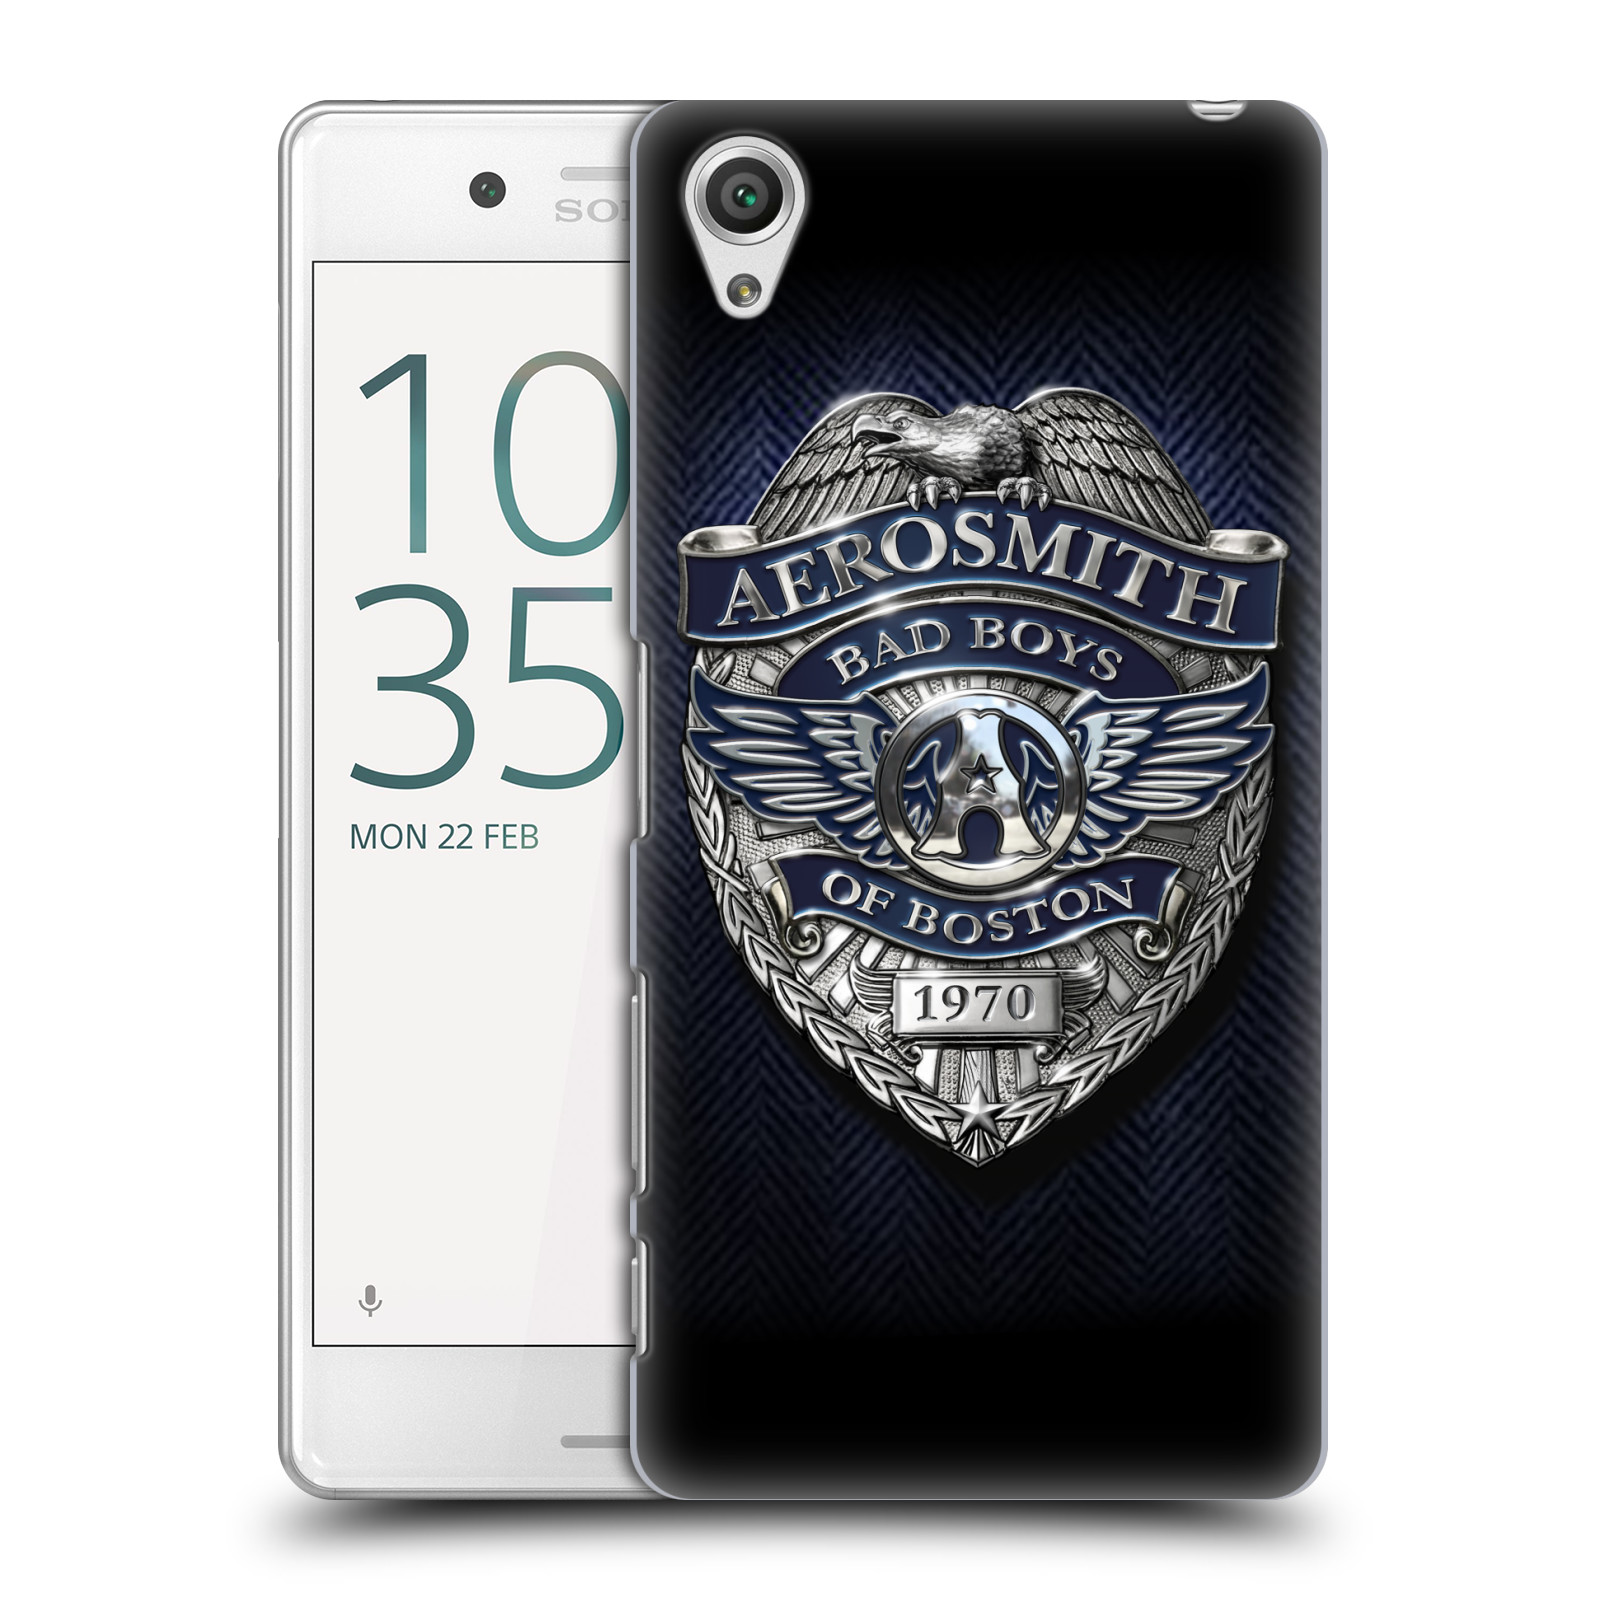 Plastové pouzdro na mobil Sony Xperia X Performance HEAD CASE - Aerosmith - Bad Boys of Boston